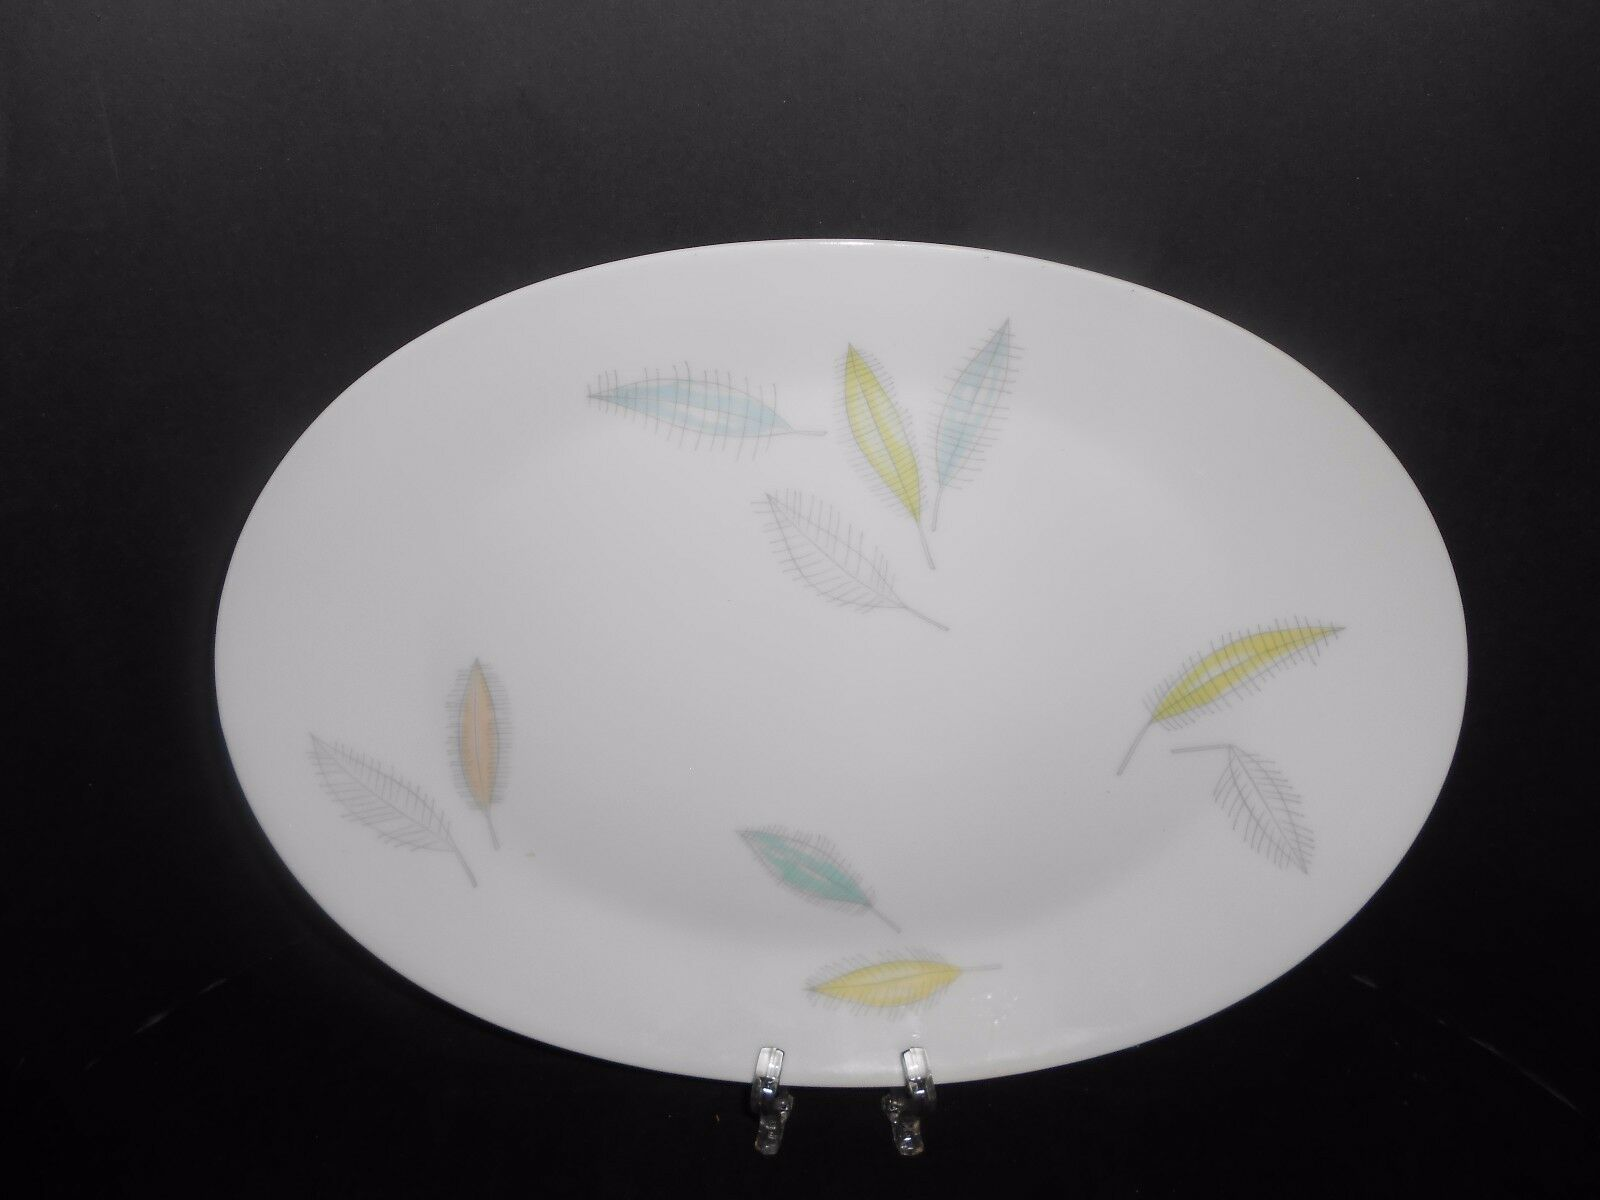 "Rosenthal China Loewy Bunte Blatte Colored Leaves Platter 13"" x 9 1/2"" 1950's - $23.75"